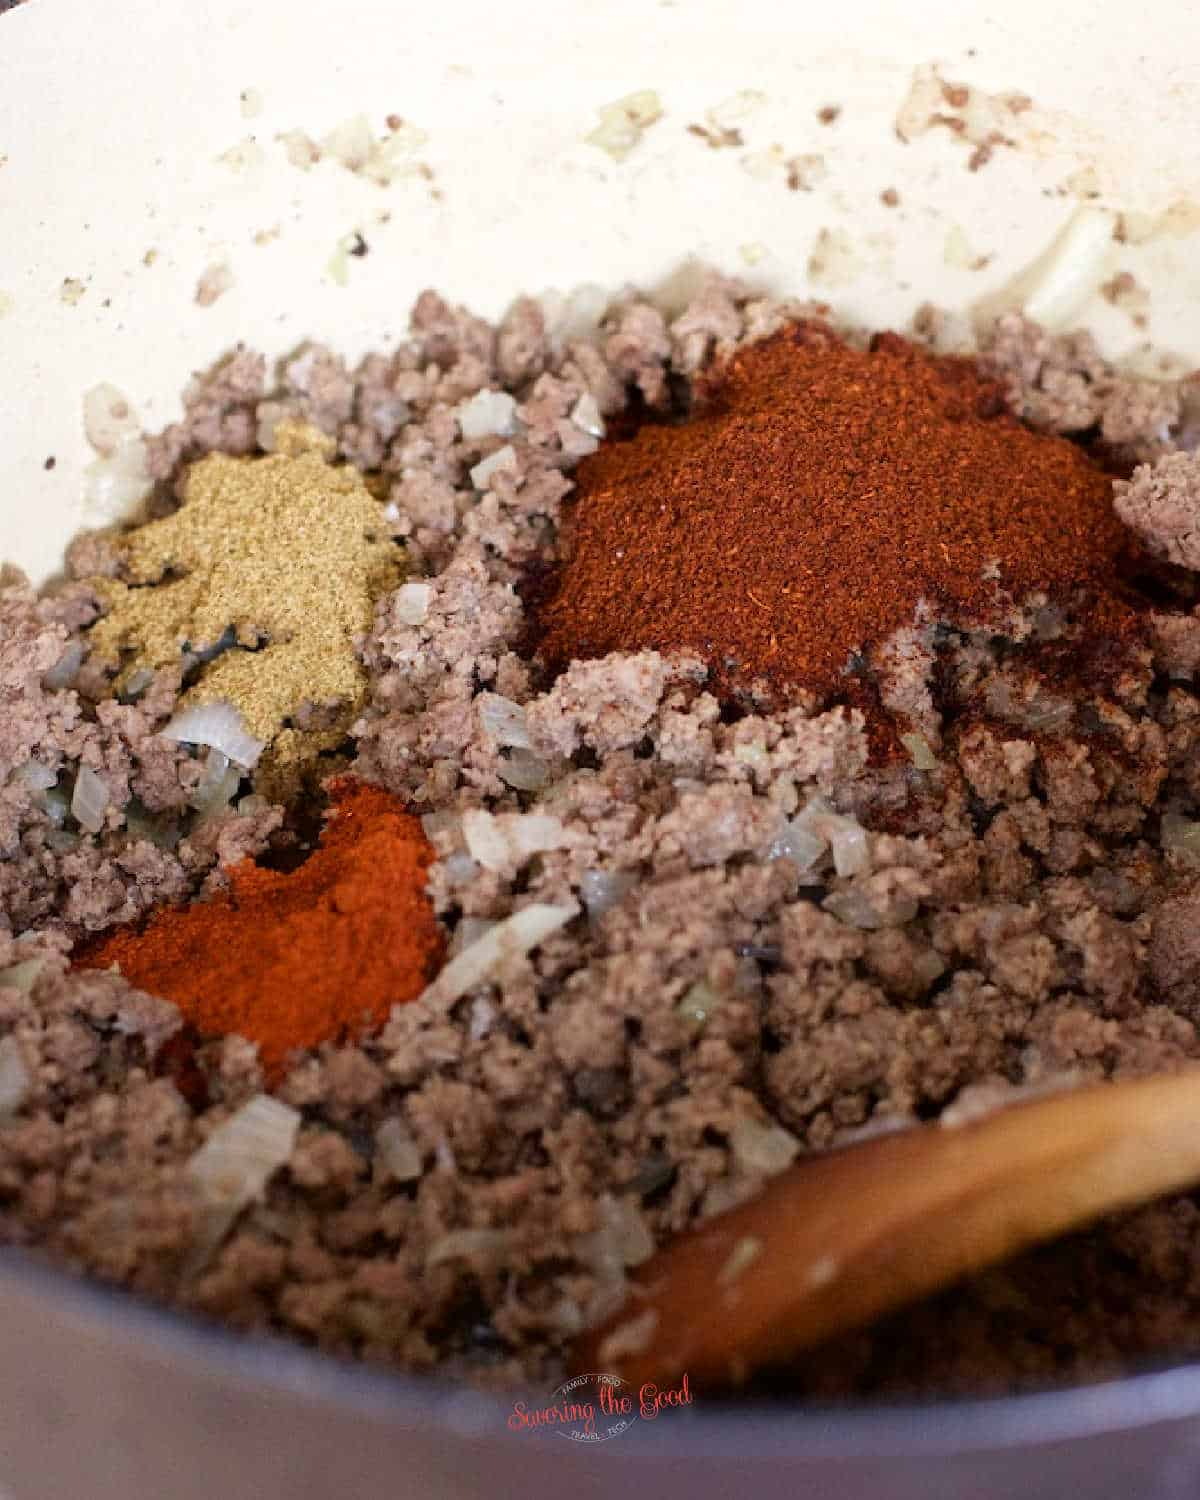 Beanless Chili ingredients in a large pot featuring the spices